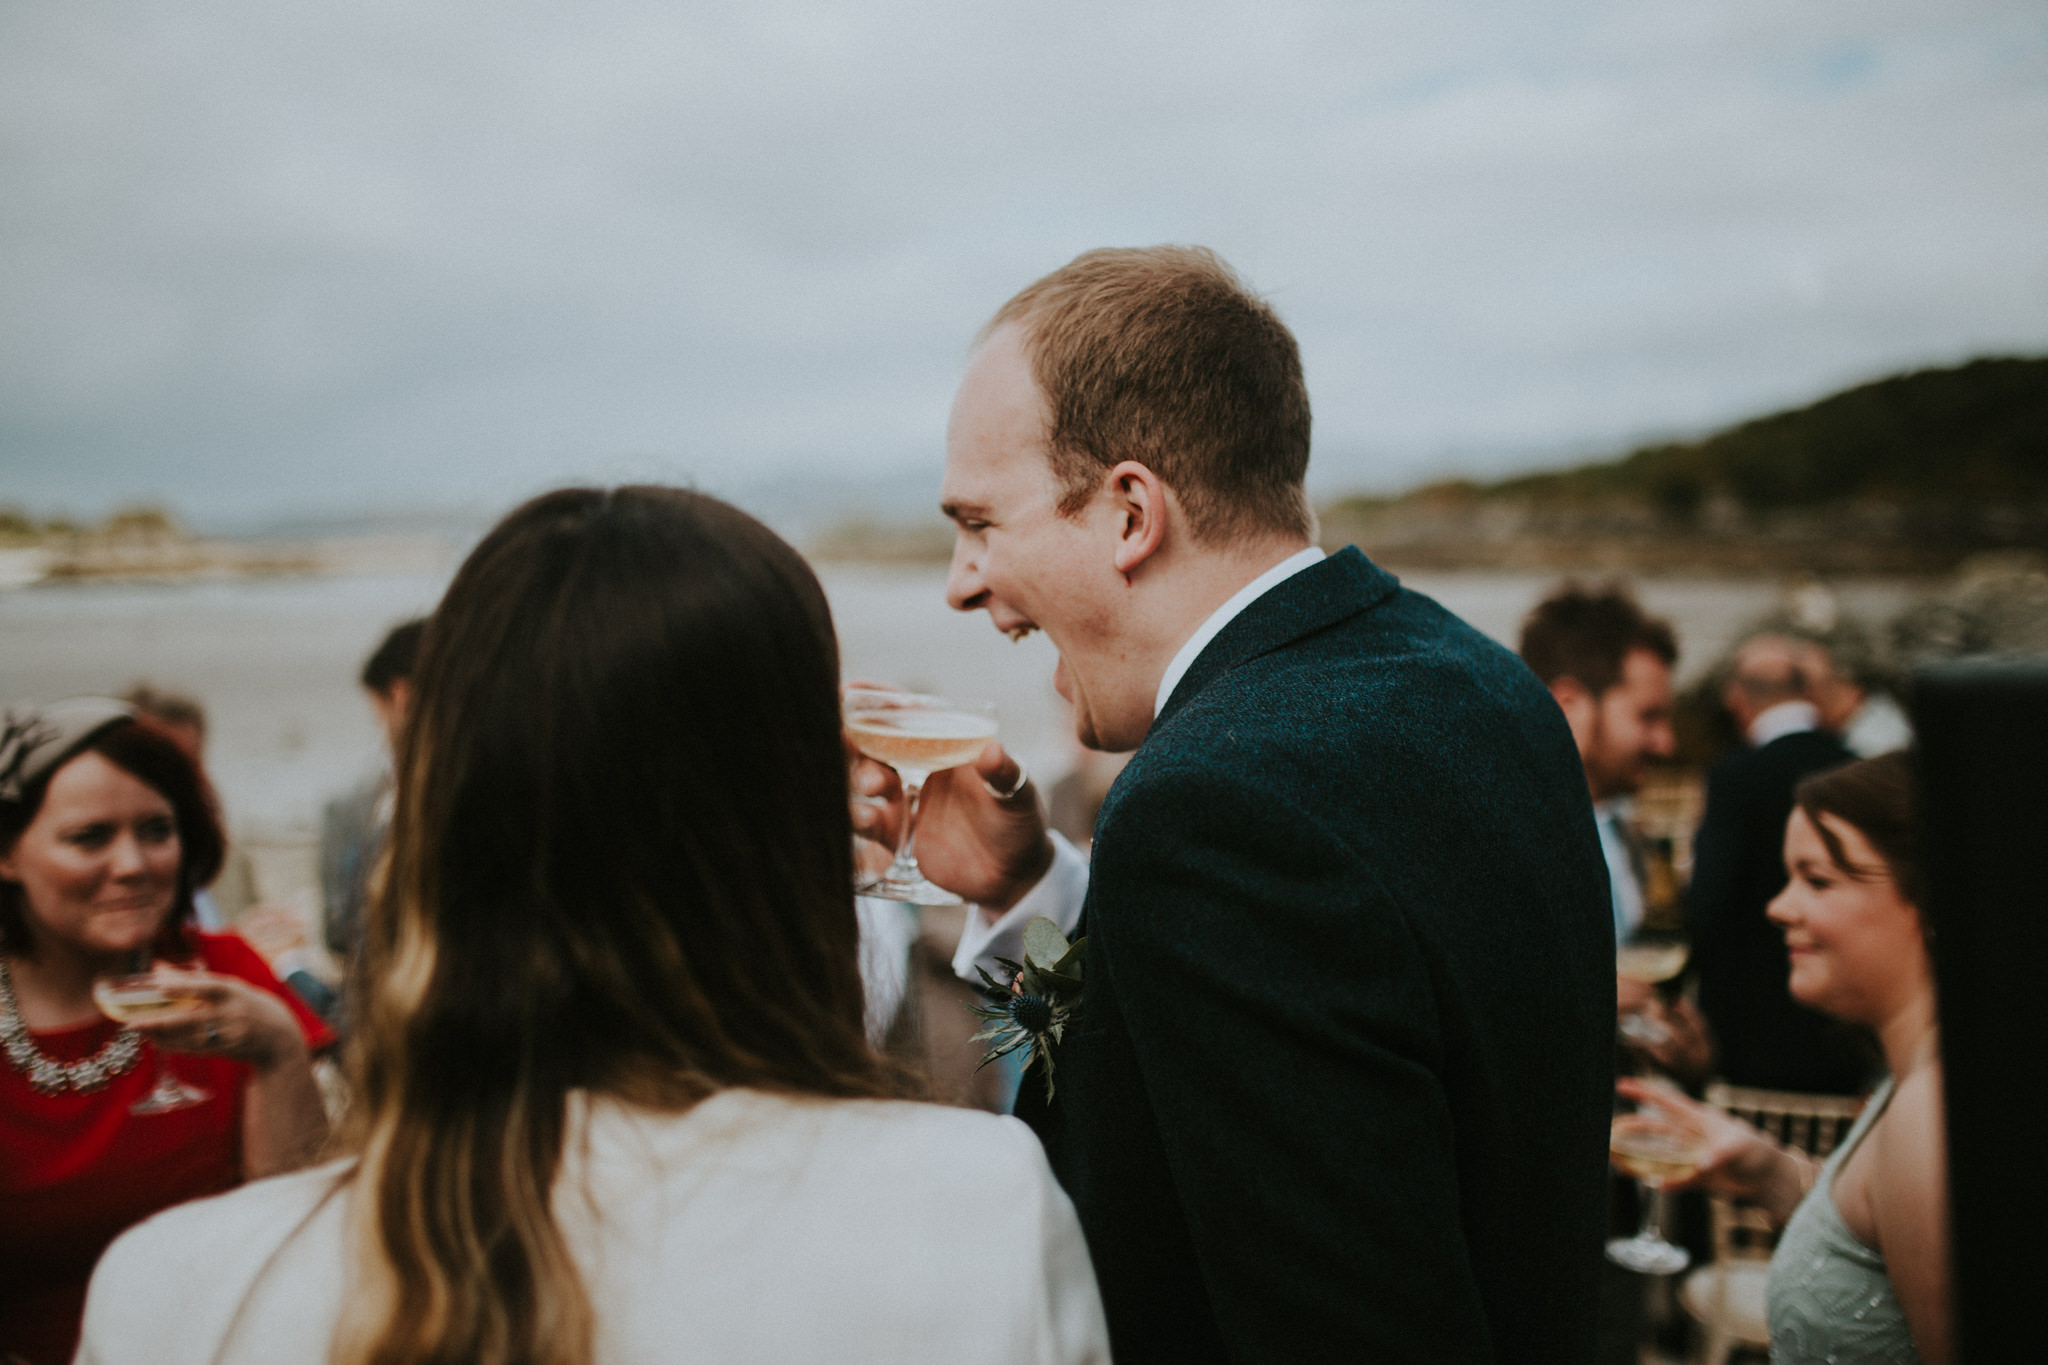 The groom is standing next to his guests and is laughing.